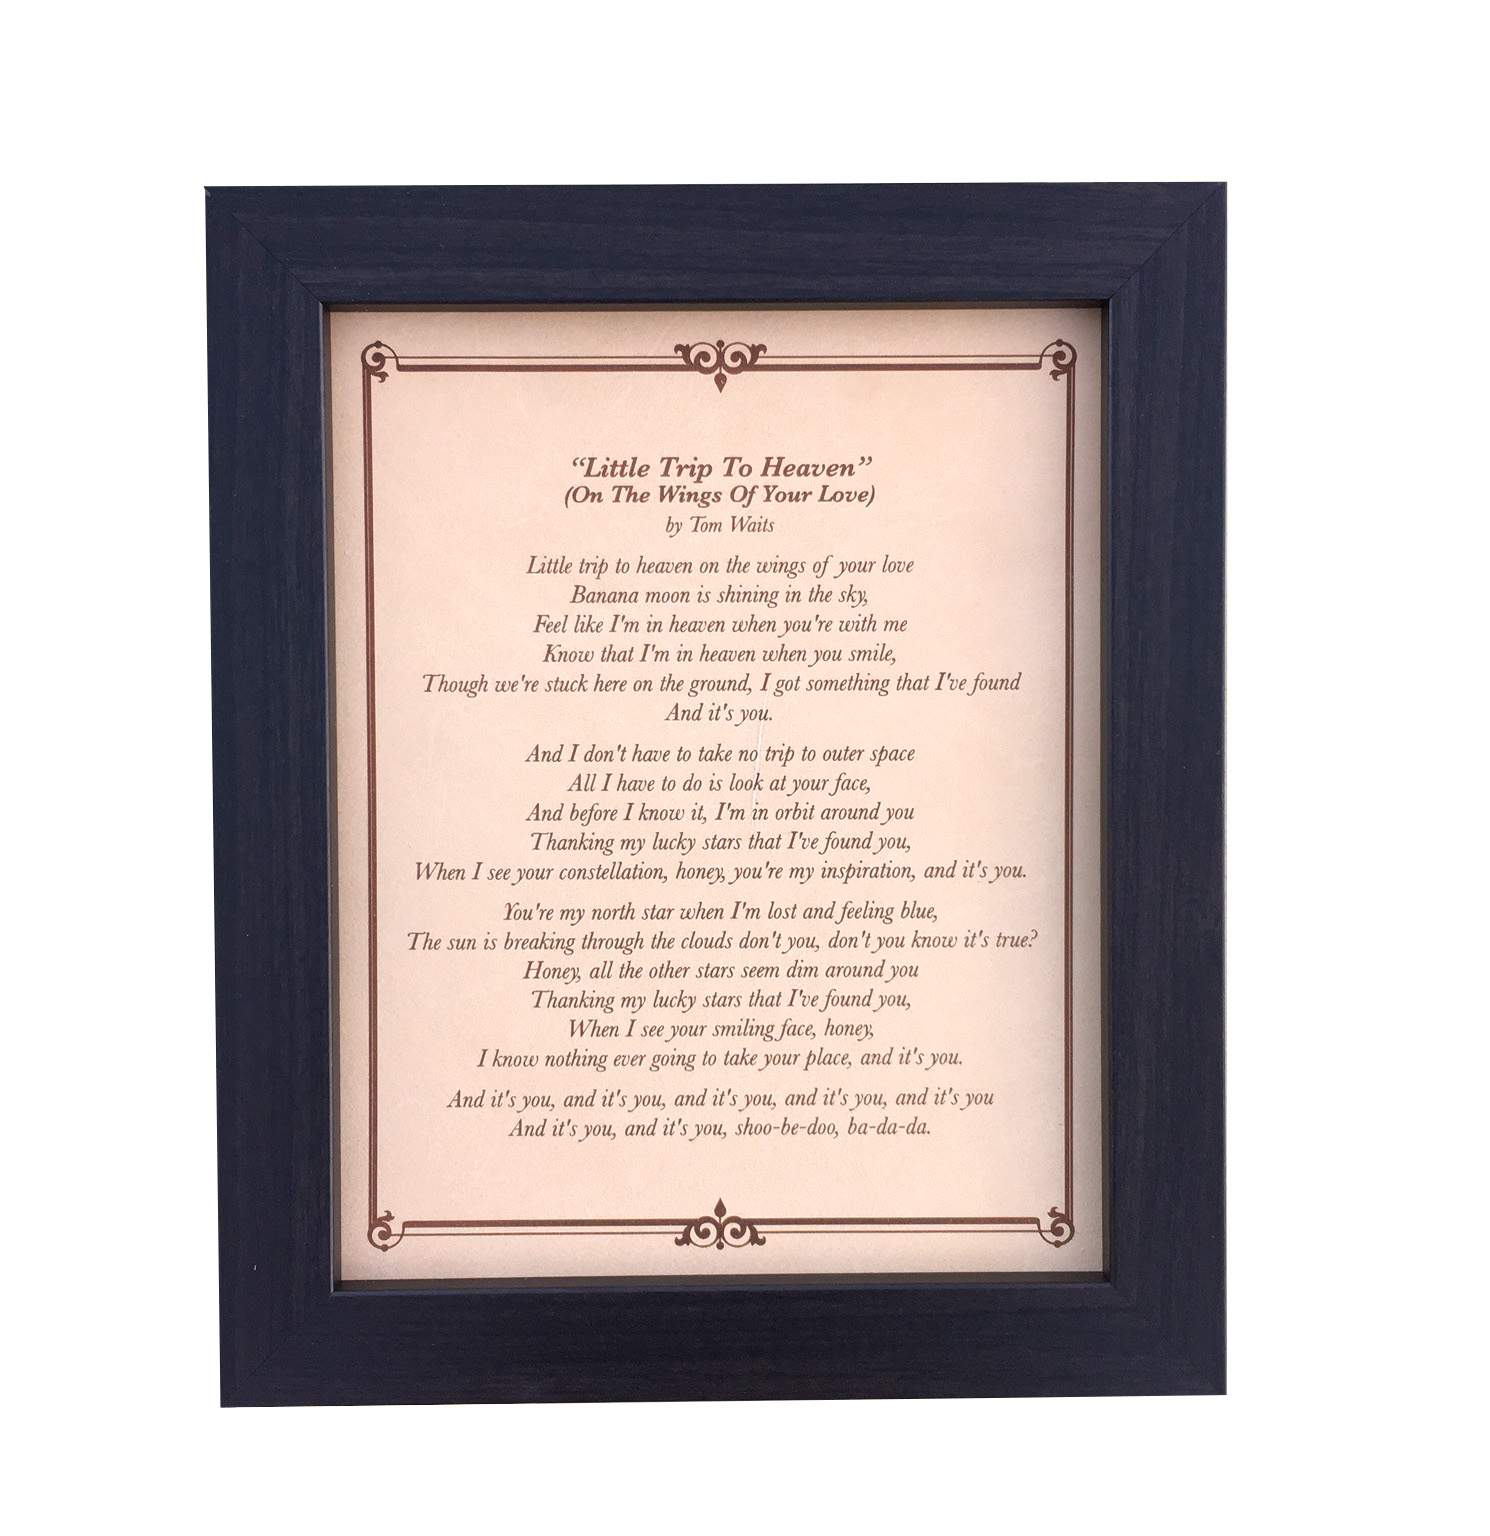 Wedding song lyrics anniversary gift for him engraved lyrics on song lyrics engraved on leather stopboris Image collections